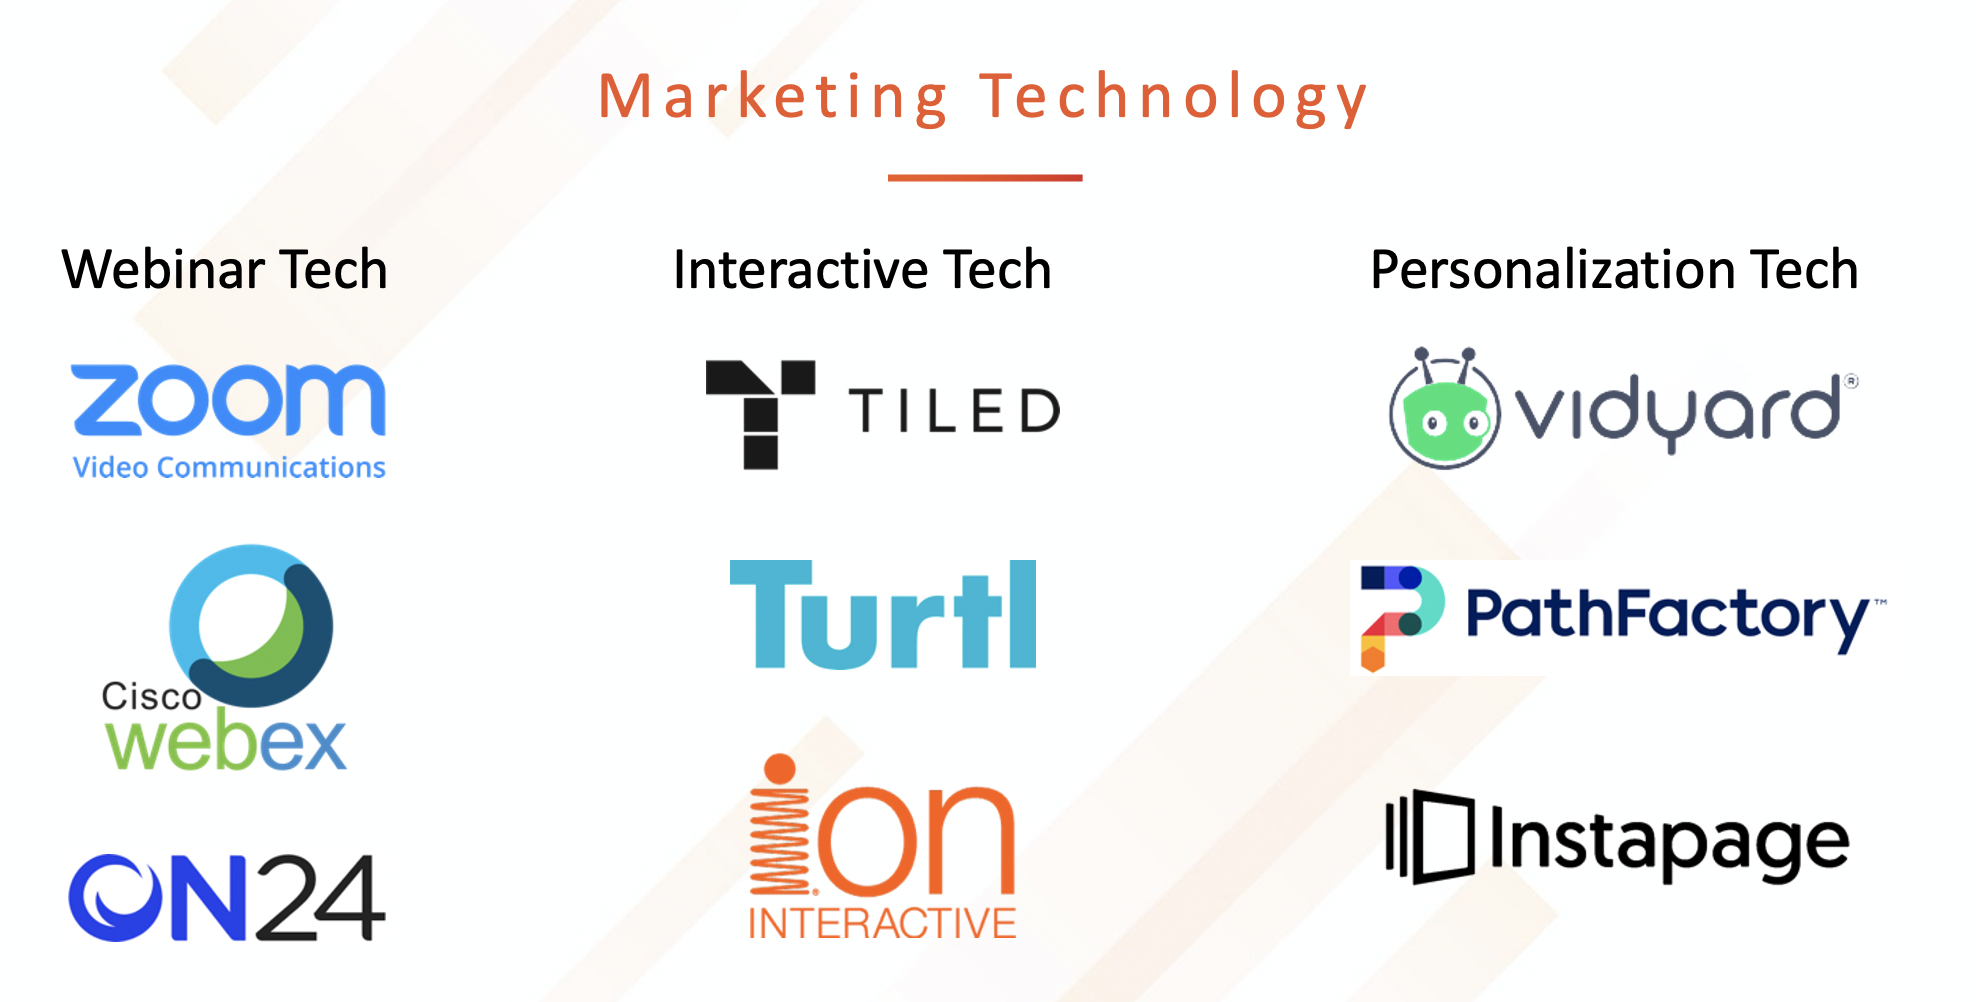 Examples of Marketing Technology